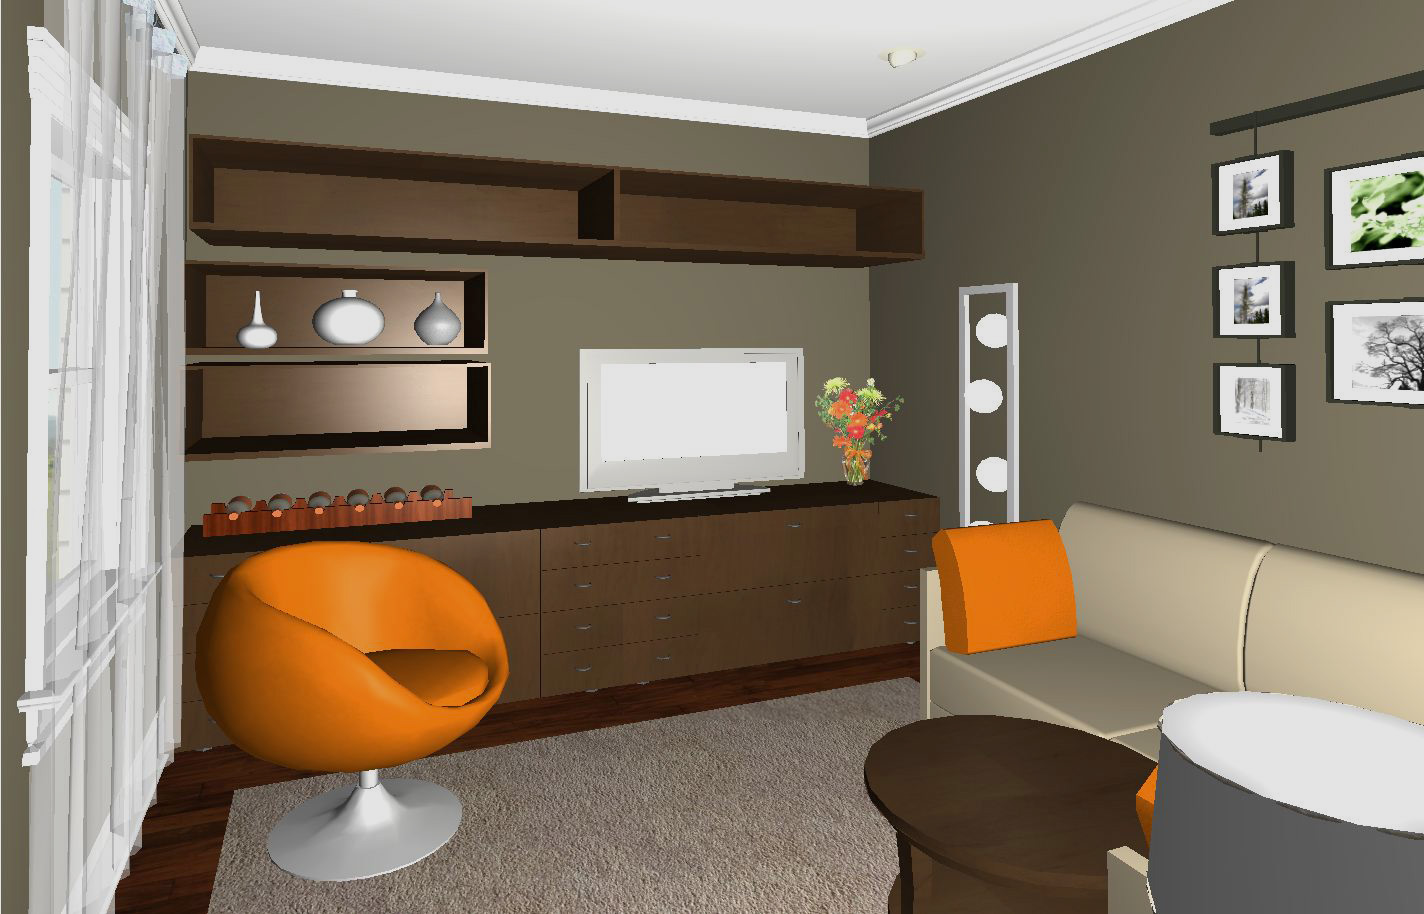 Duplex - 1st floor rendered view